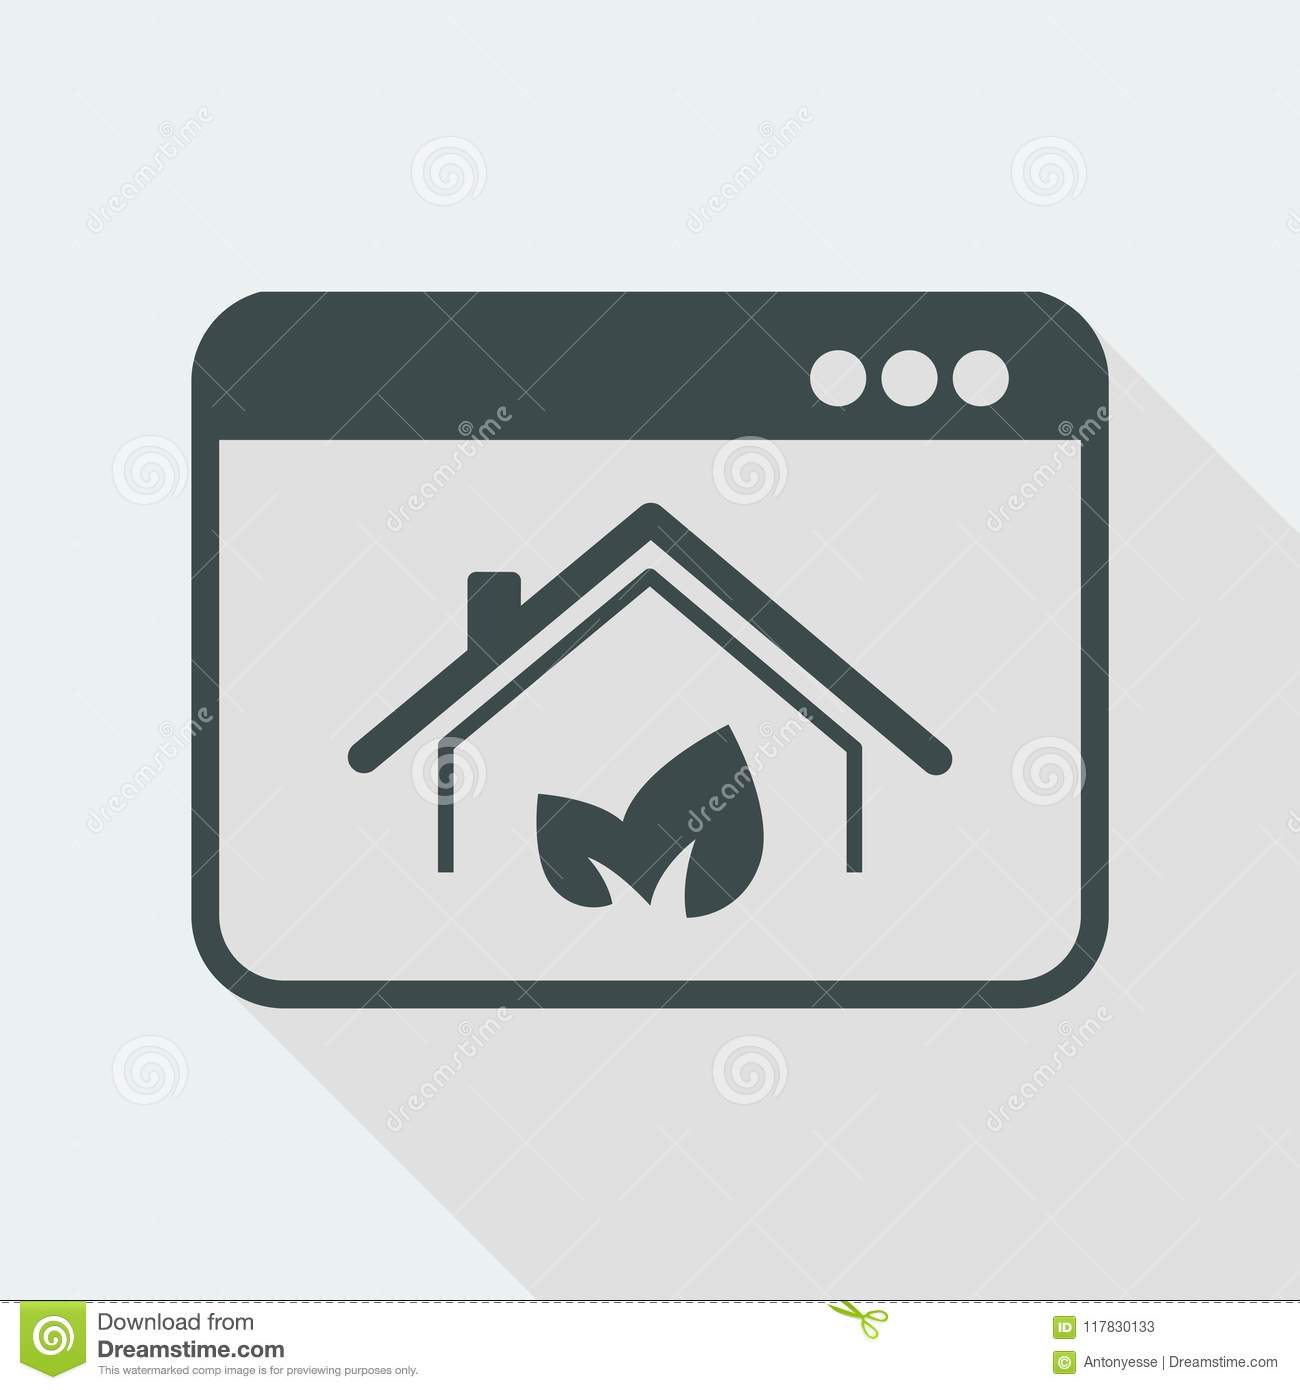 Eco Friendly Home Vector Icon For Computer Website Or Application